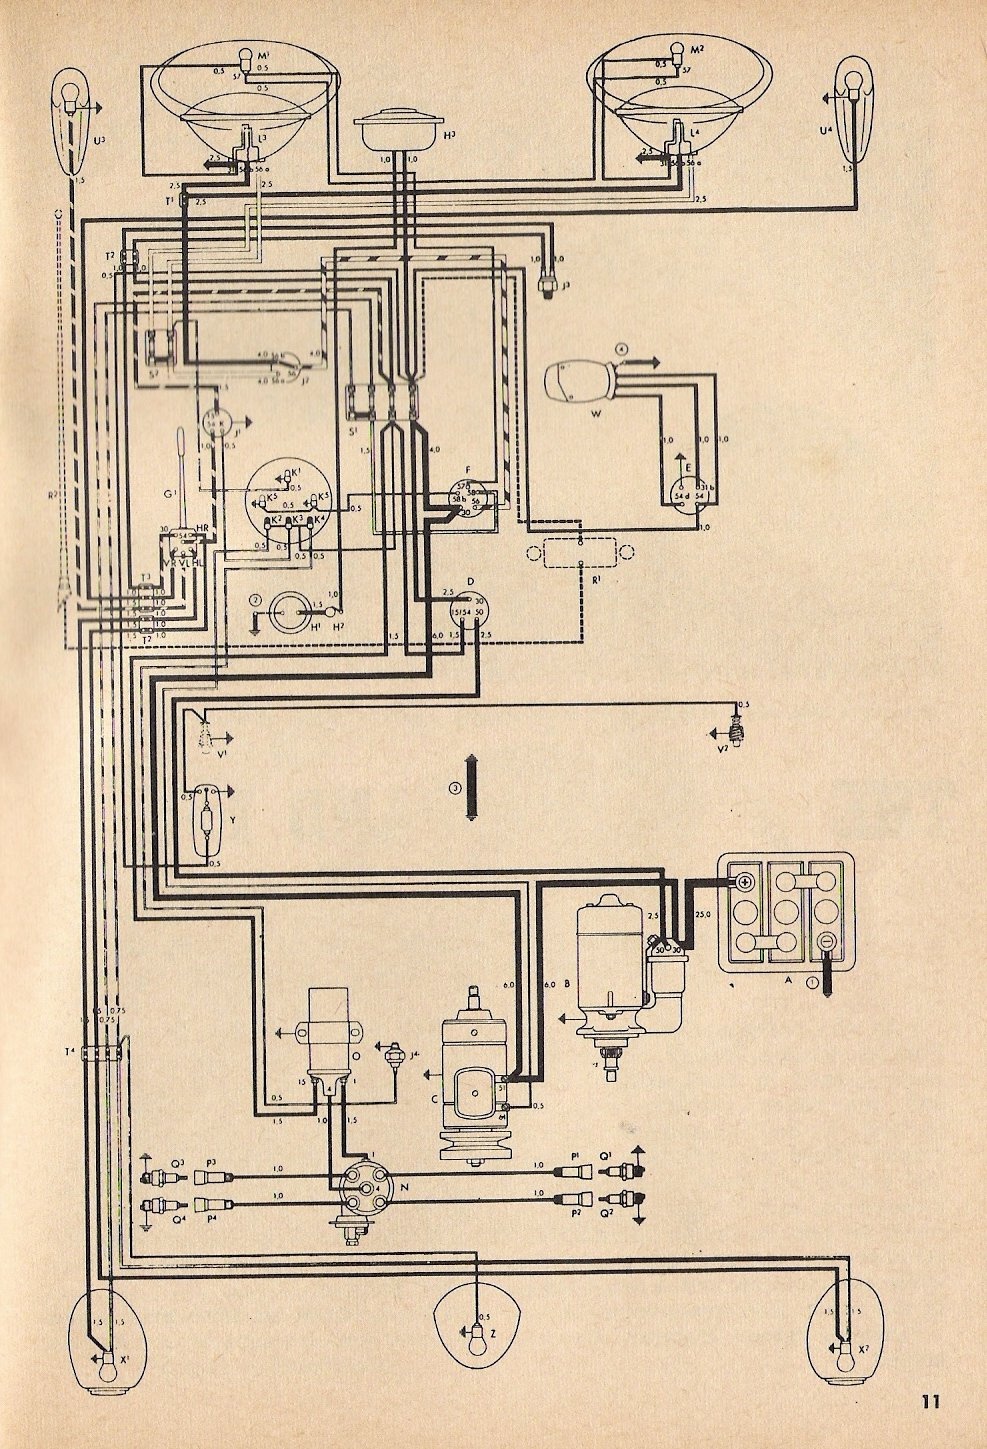 bug_toaug57 1957 beetle wiring diagram thegoldenbug com 76 vw beetle wiring diagram at edmiracle.co